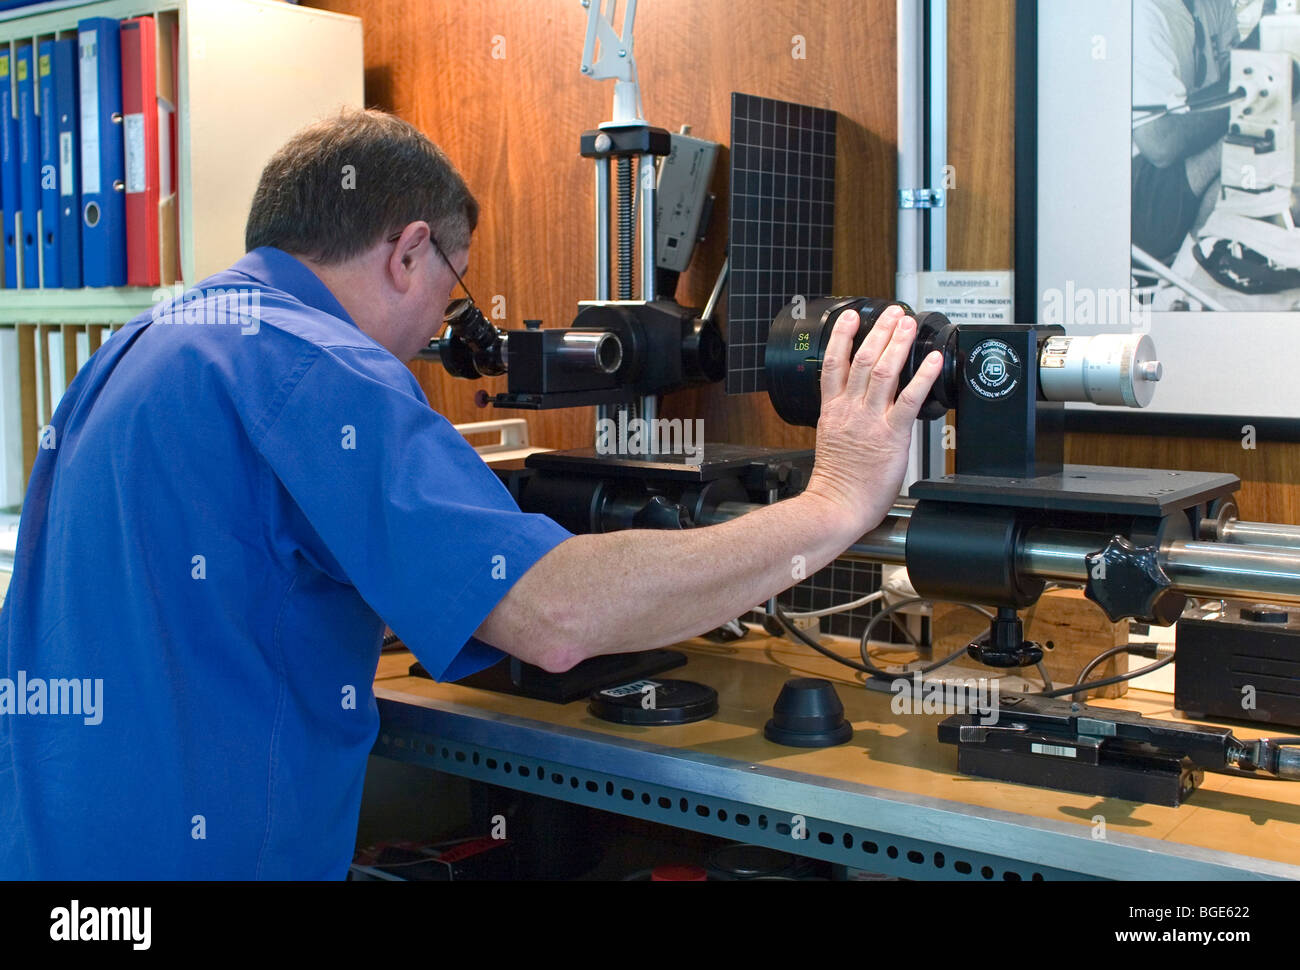 Lens Technician checking a lens on an Autocollimator - Stock Image